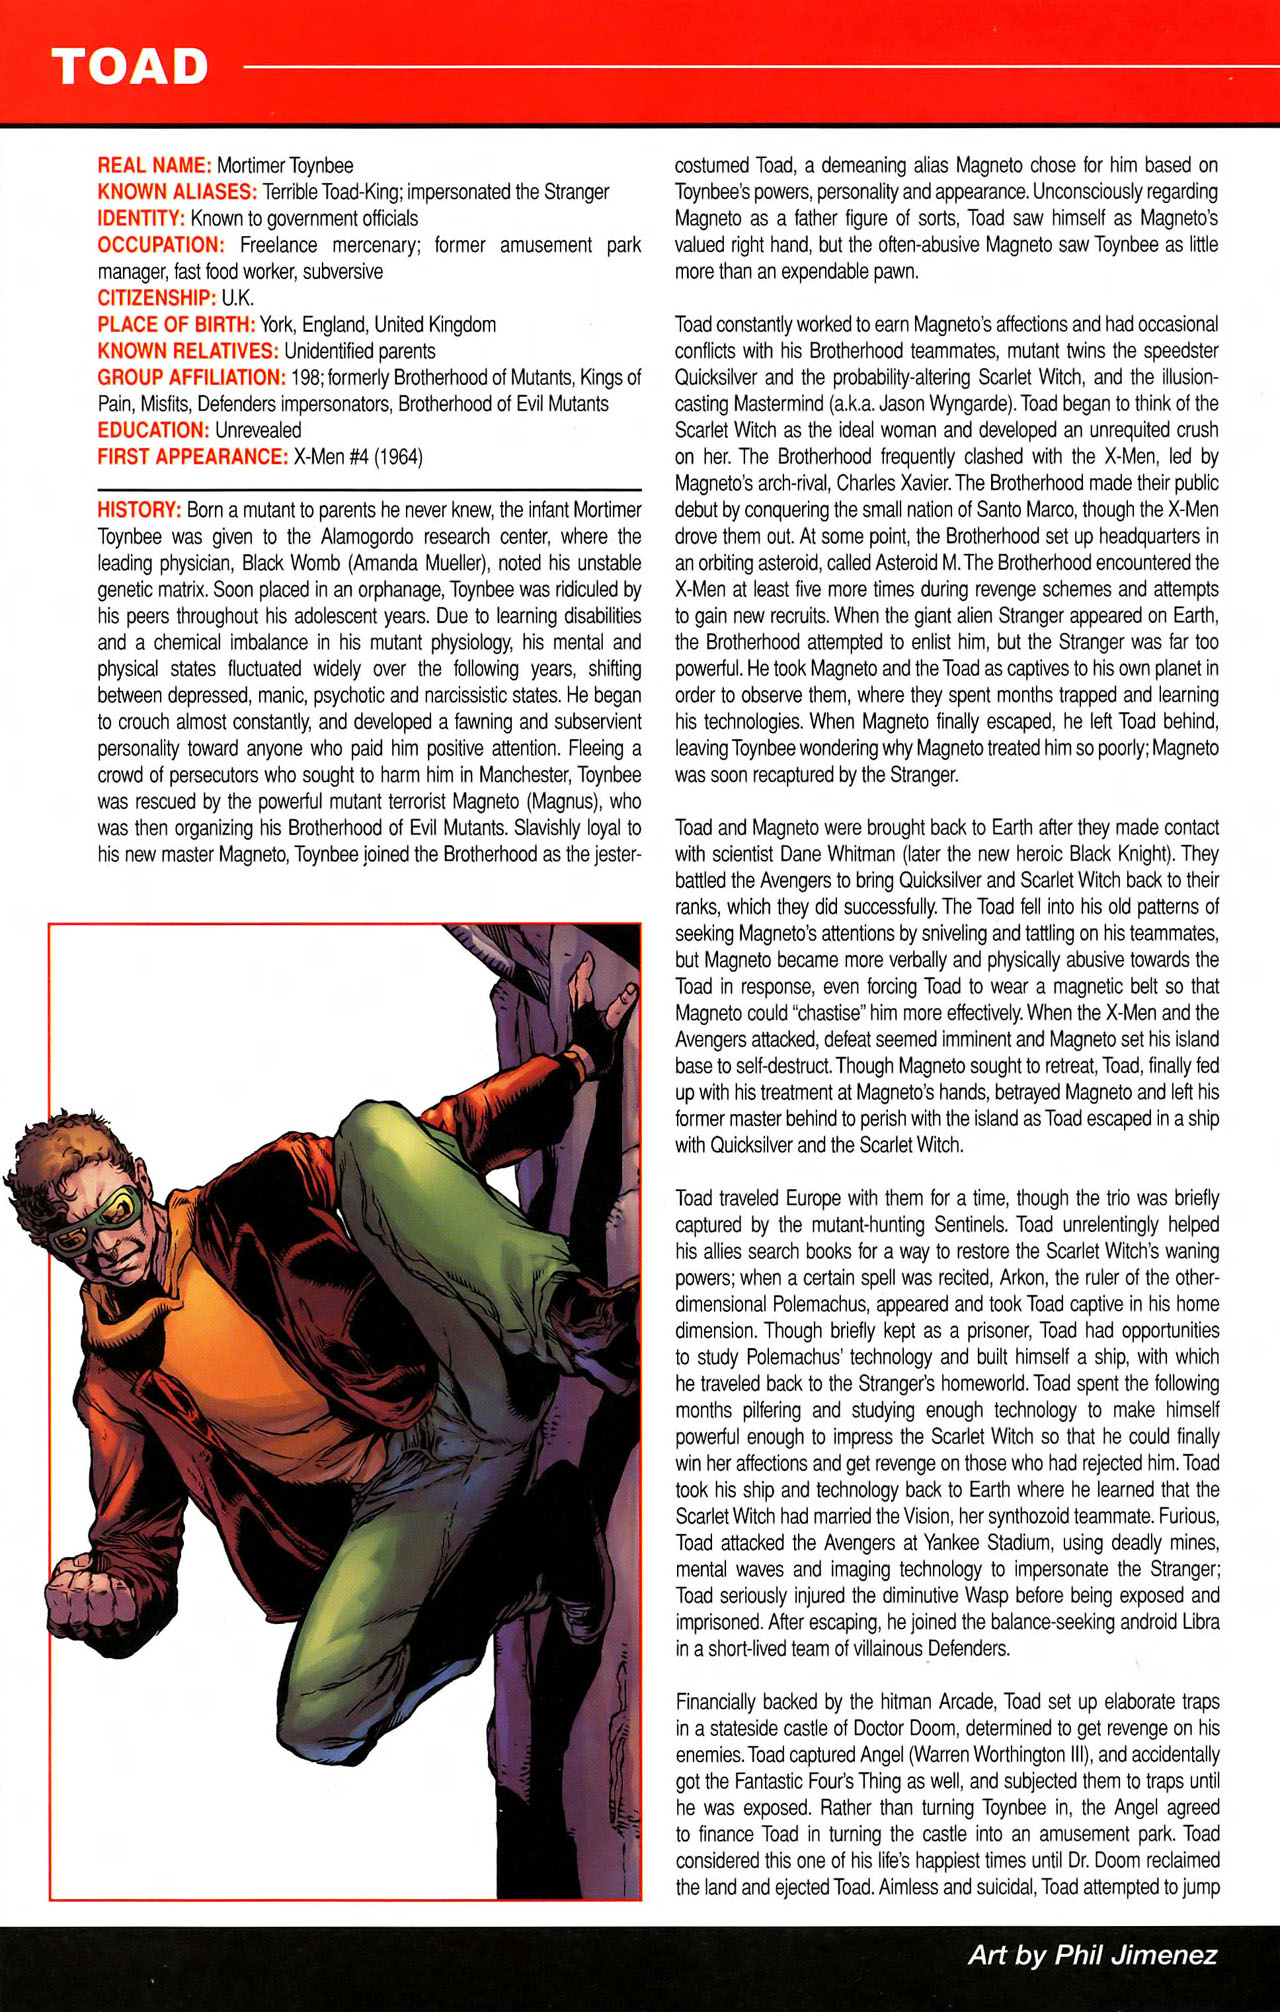 Read online All-New Official Handbook of the Marvel Universe A to Z comic -  Issue #11 - 50